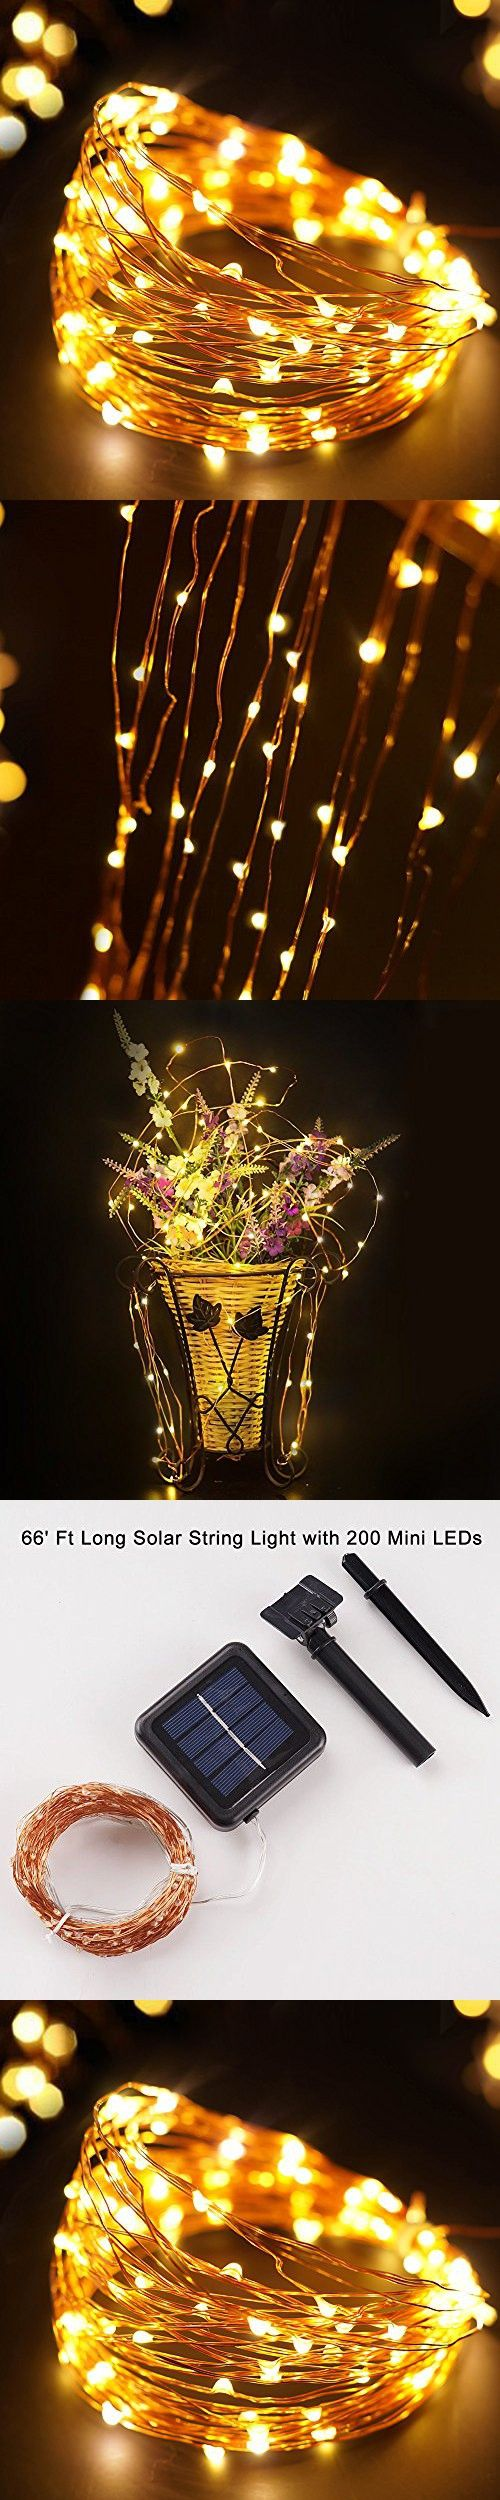 Starry String Lights Gold : Best 20+ Starry string lights ideas on Pinterest